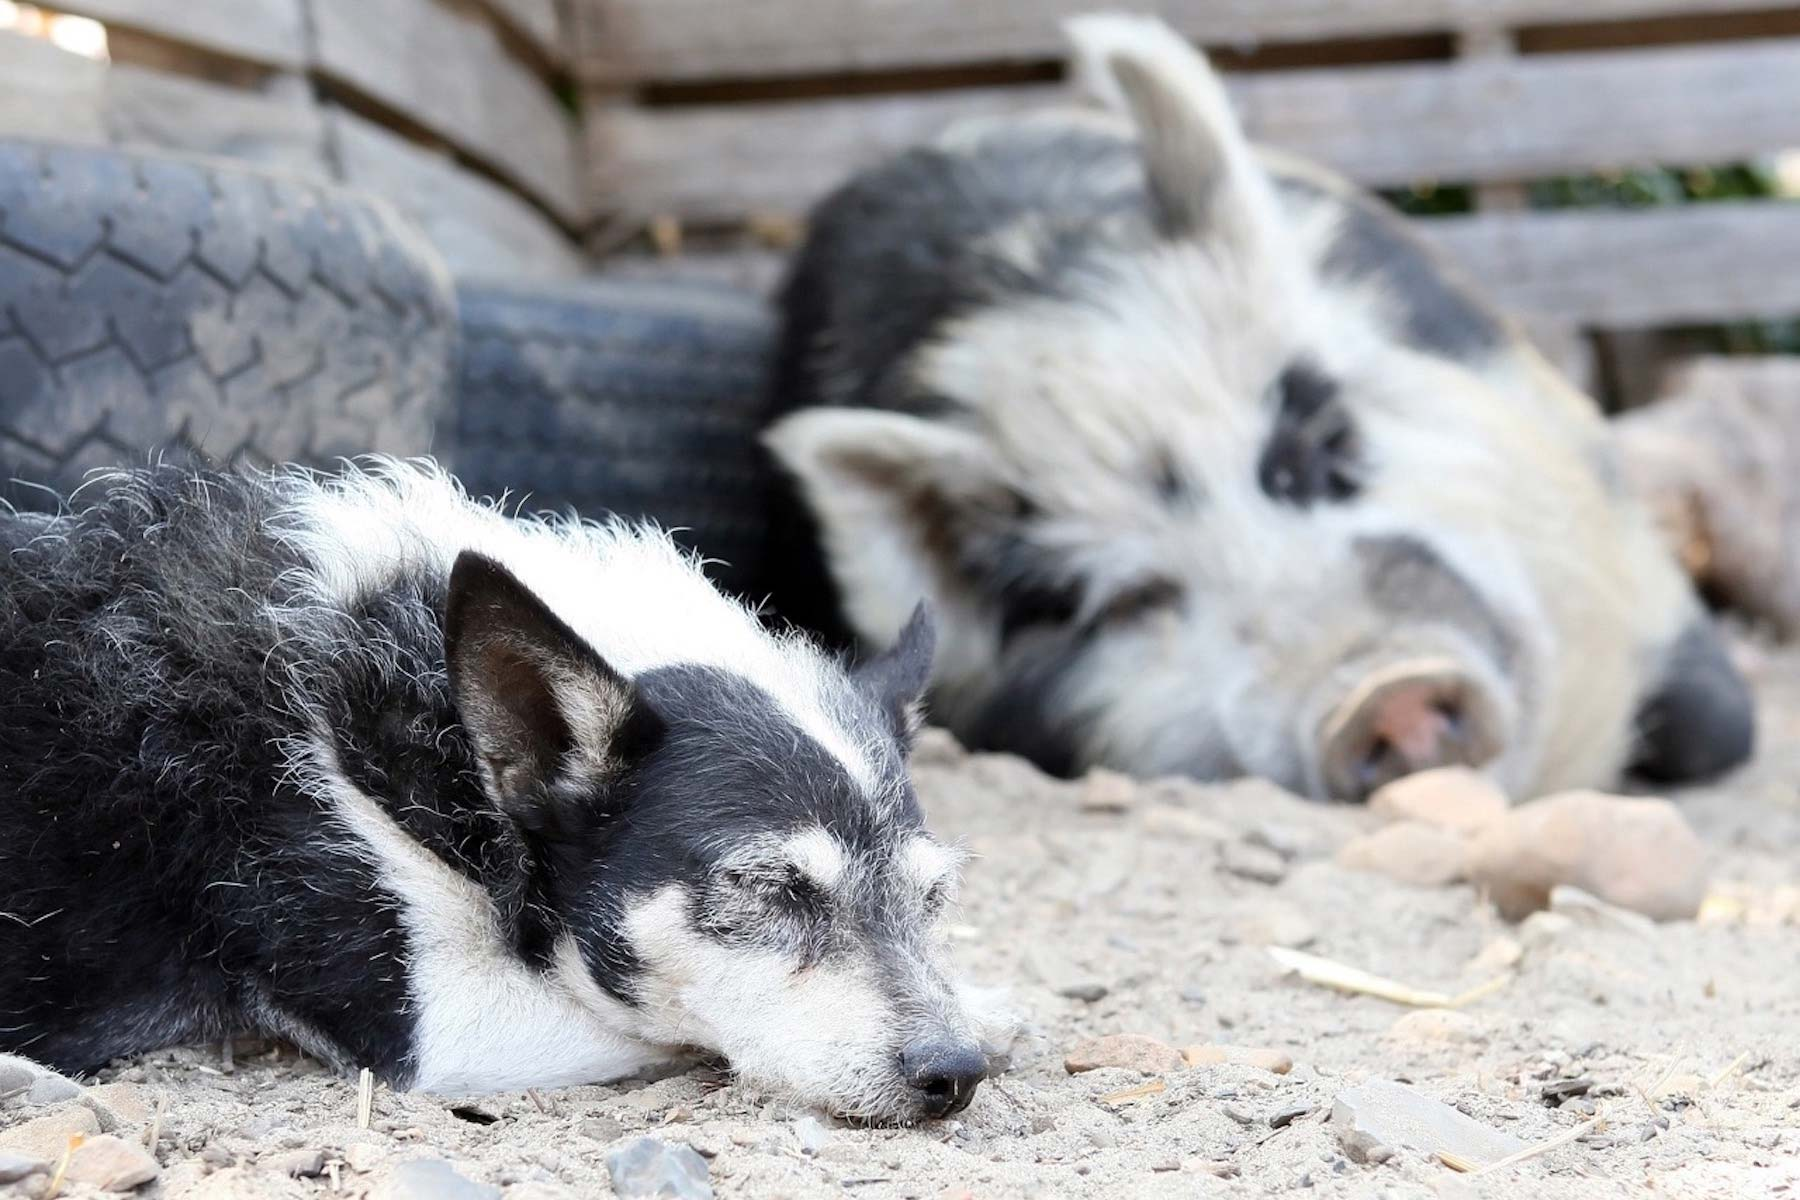 Pigs share many characteristics with dogs